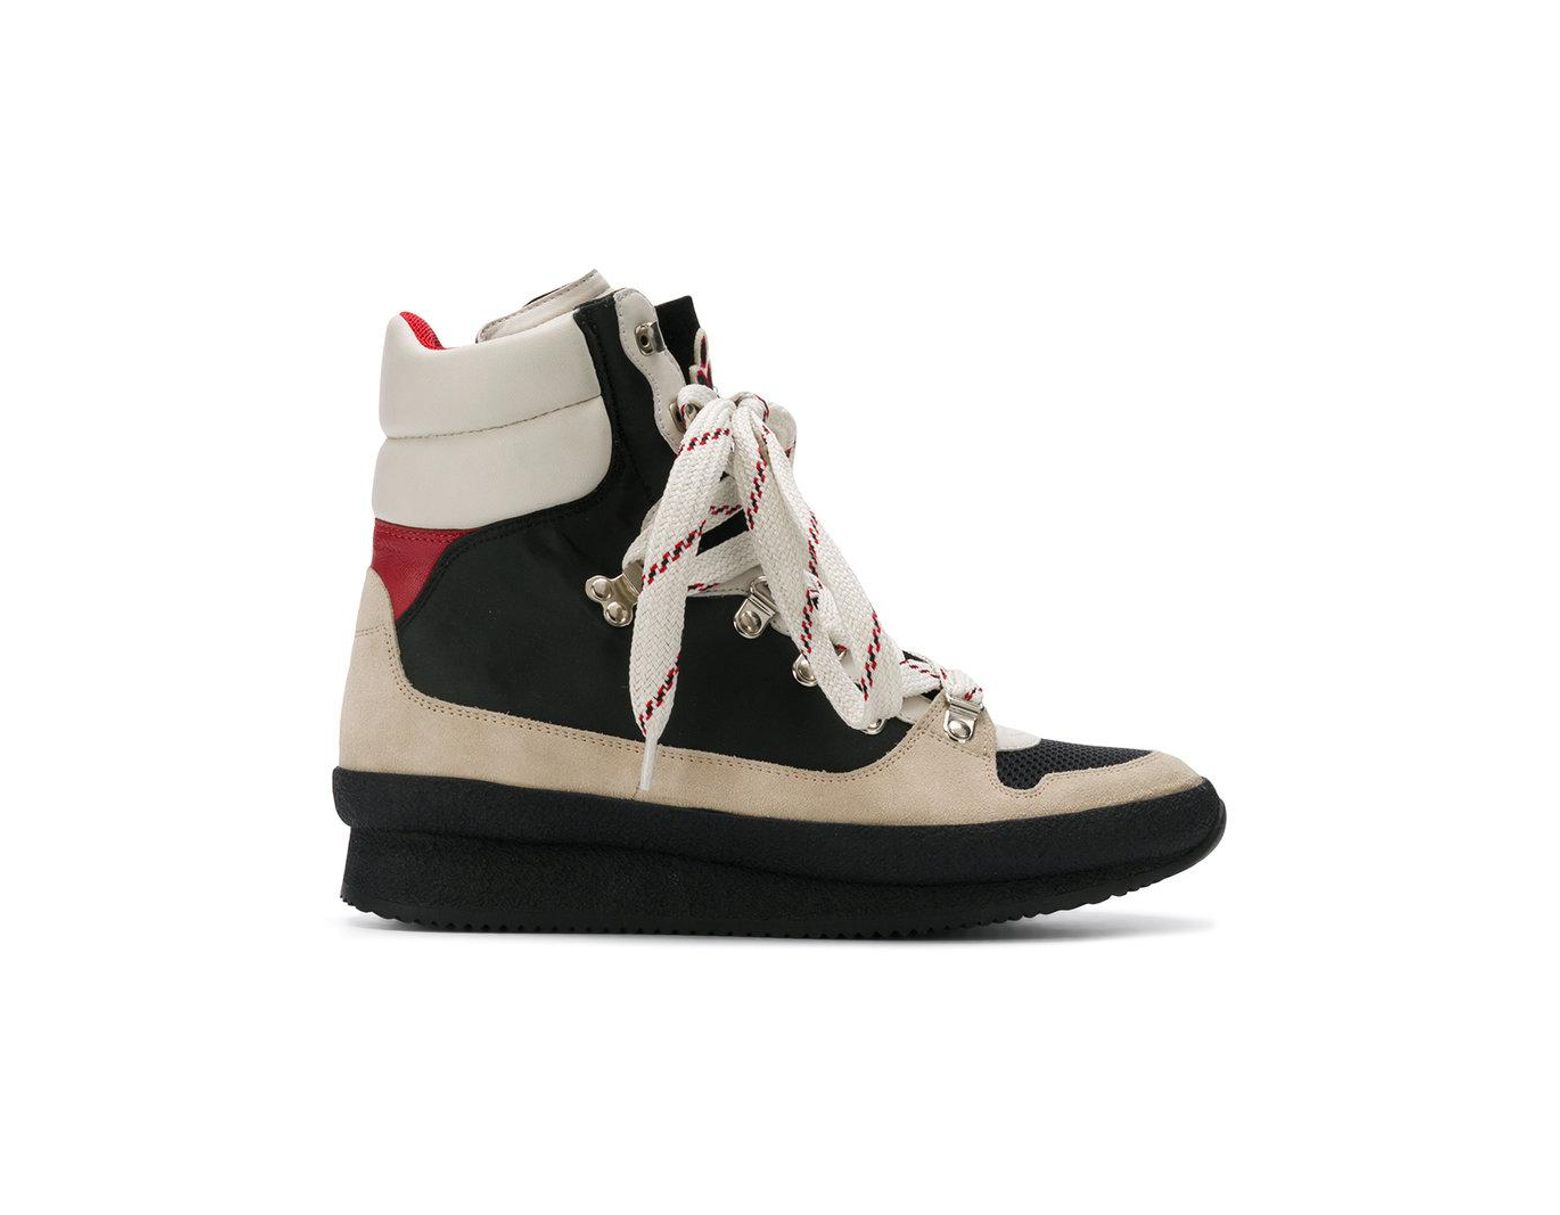 ee97792cfa0 Isabel Marant Brendta High Top Sneakers in Black - Save 35% - Lyst